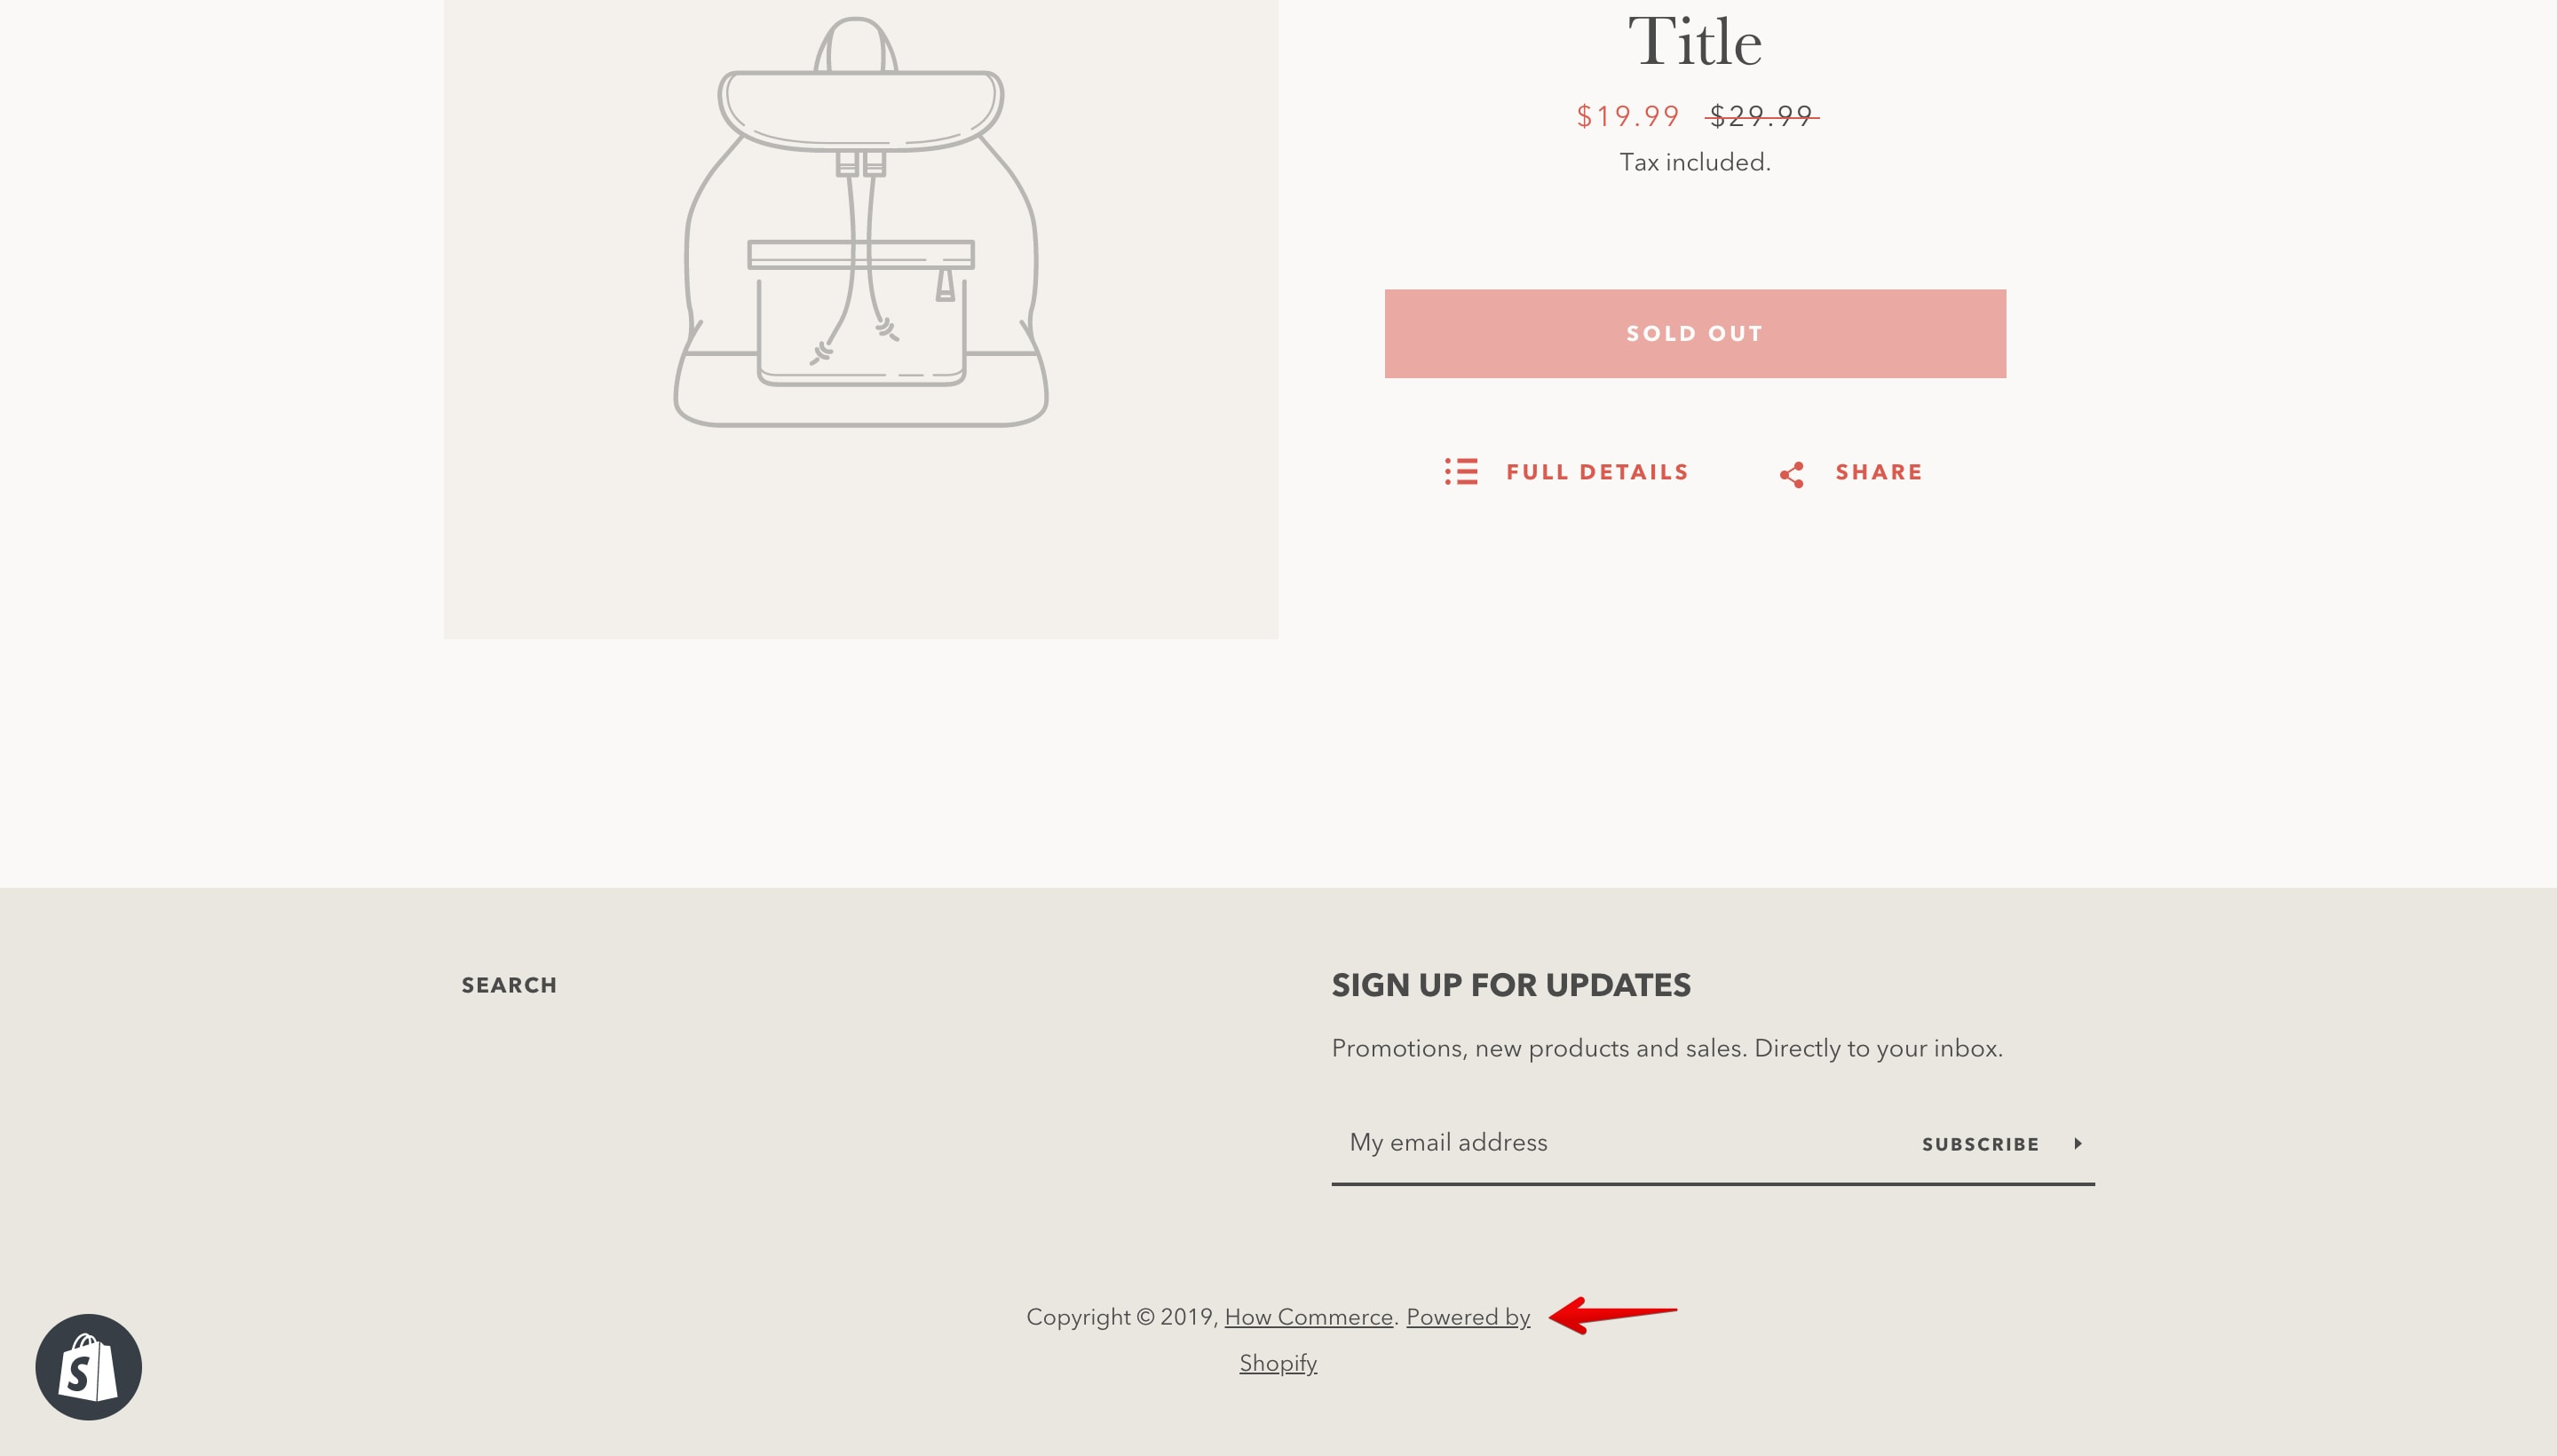 """Minimal theme """"Powered by Shopify"""" copyright."""